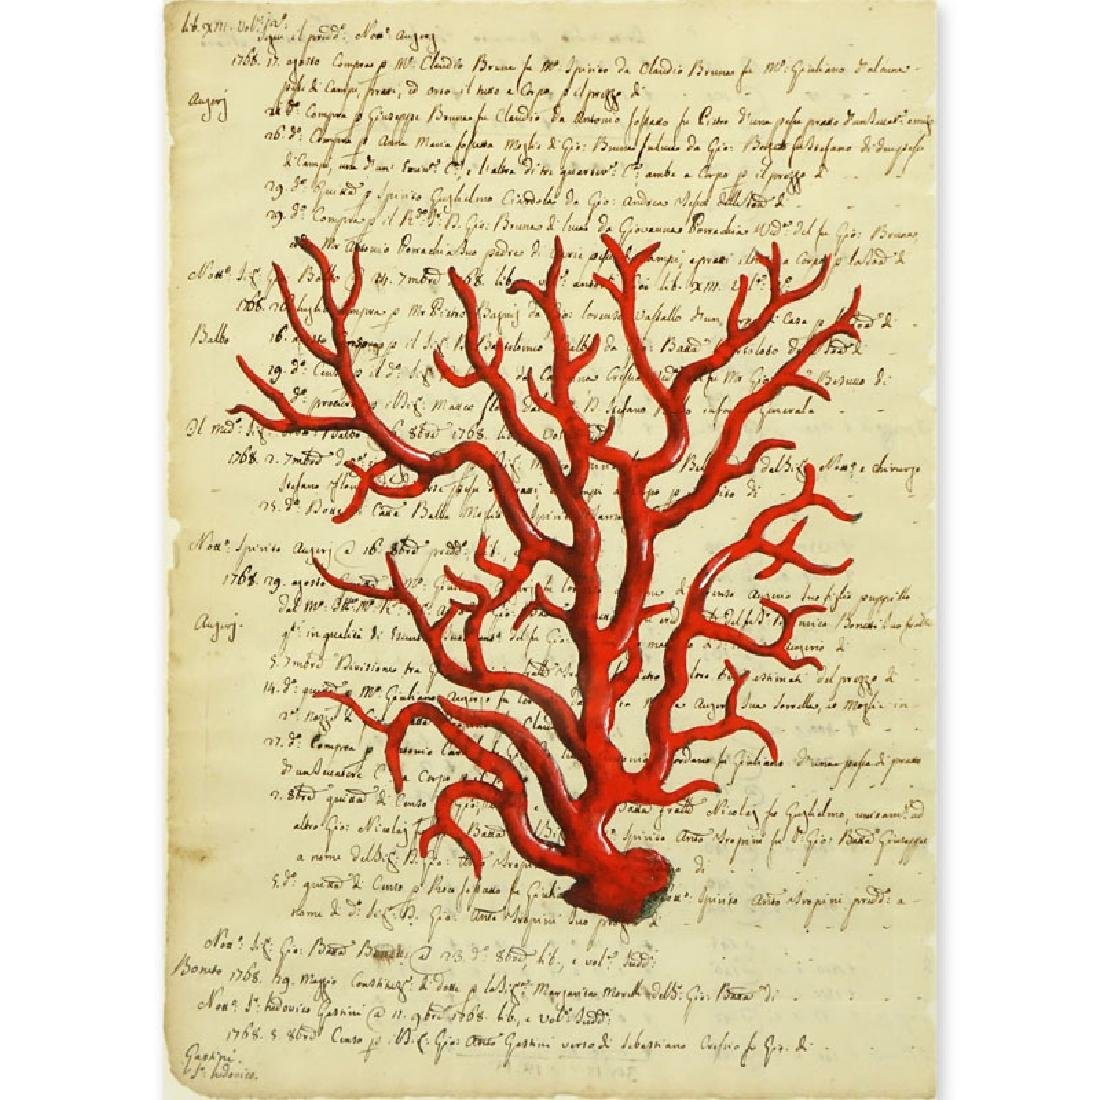 Italian School Hand Colored Engraving Of Red Coral On